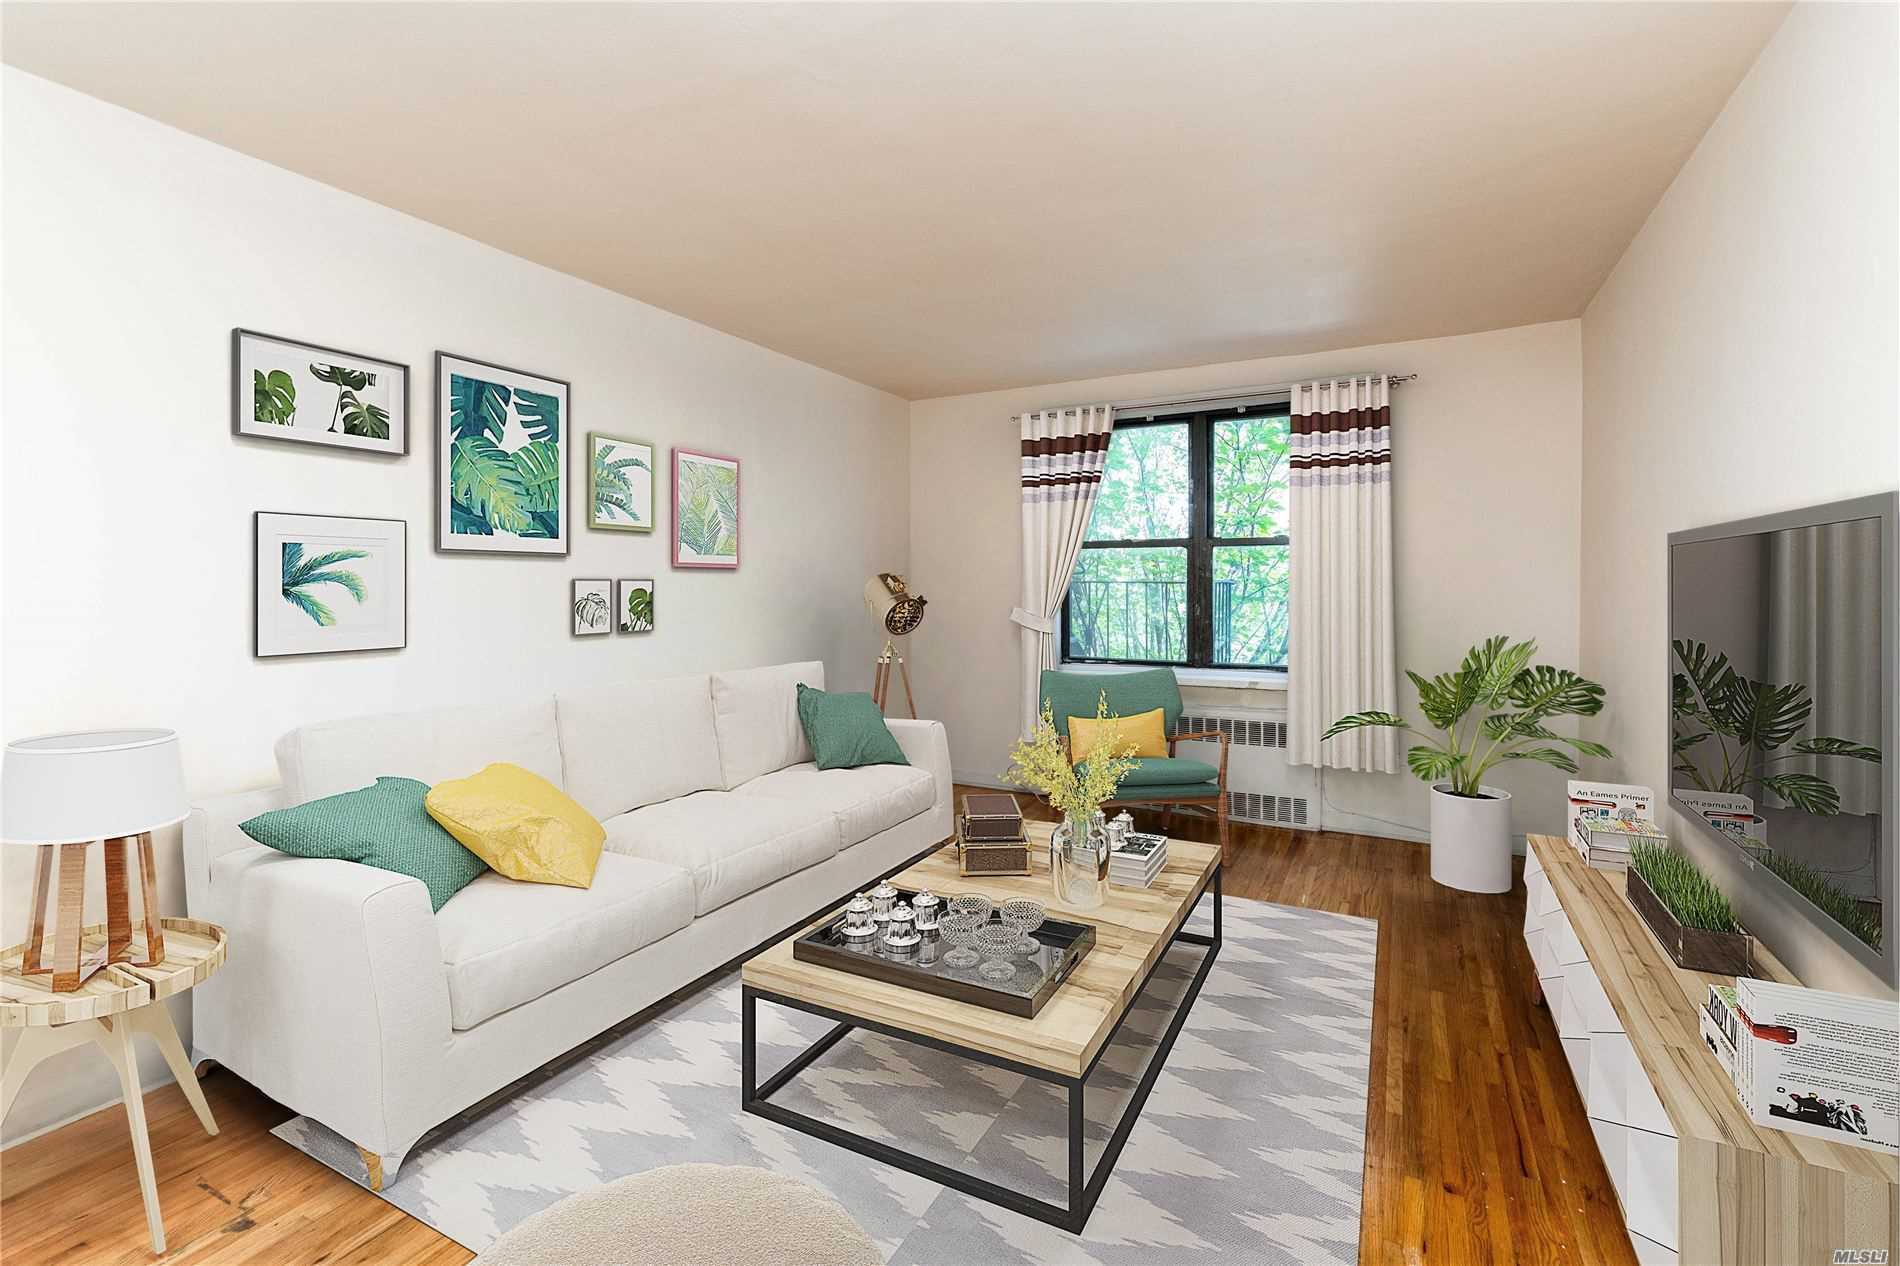 144-64 Sanford Ave 11355 - One of Flushing Homes for Sale